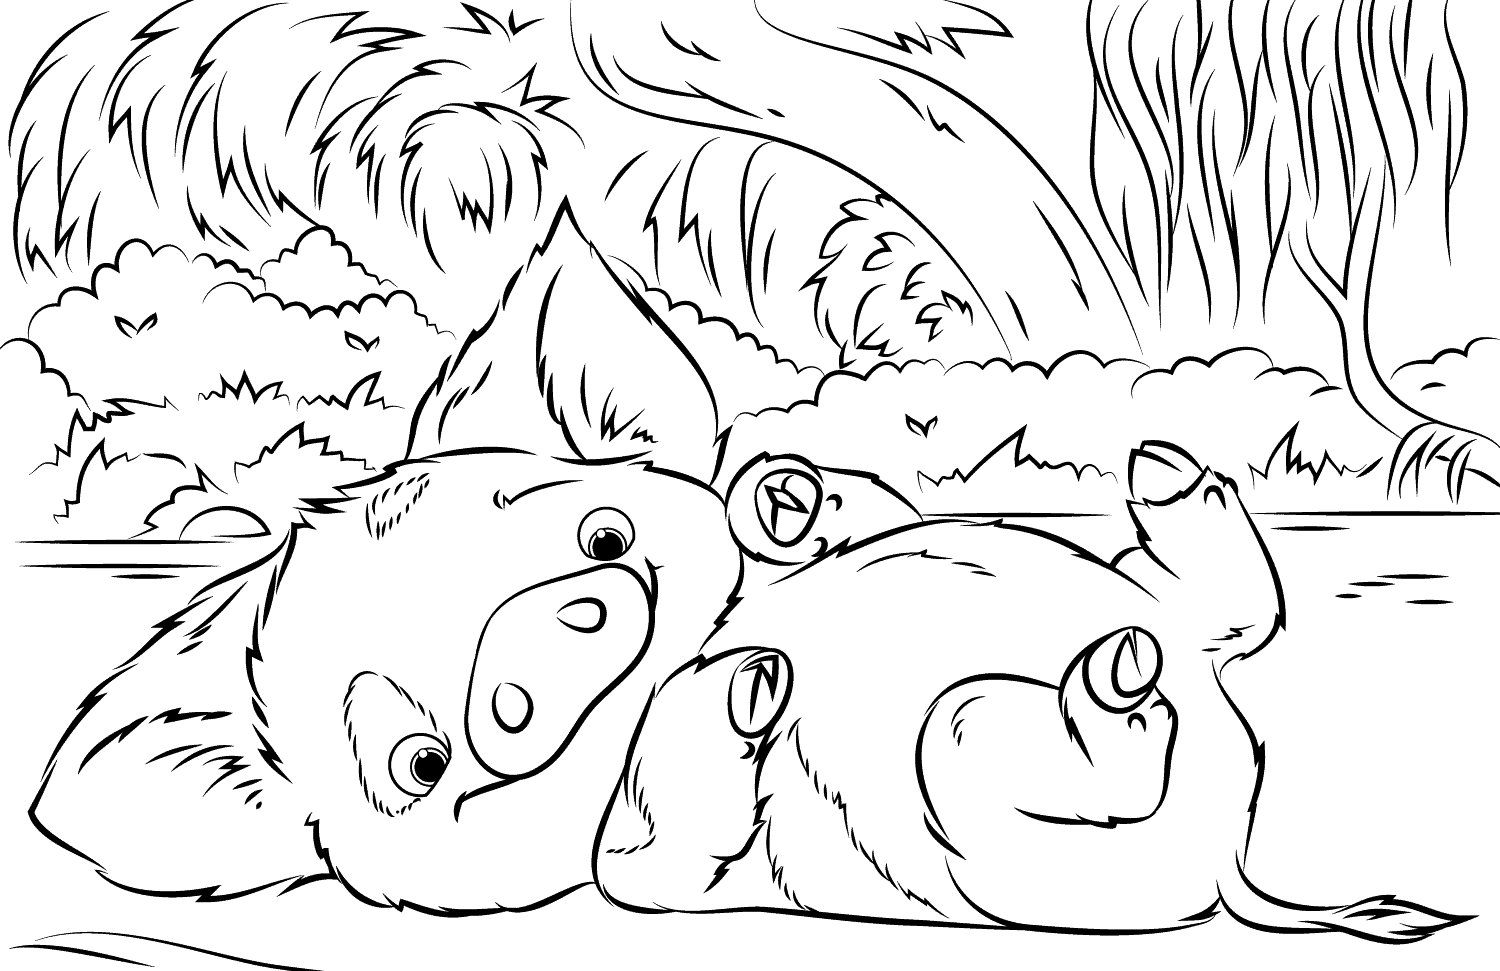 35 Printable Moana Coloring Pages Moana Coloring Moana Coloring Pages Disney Coloring Pages